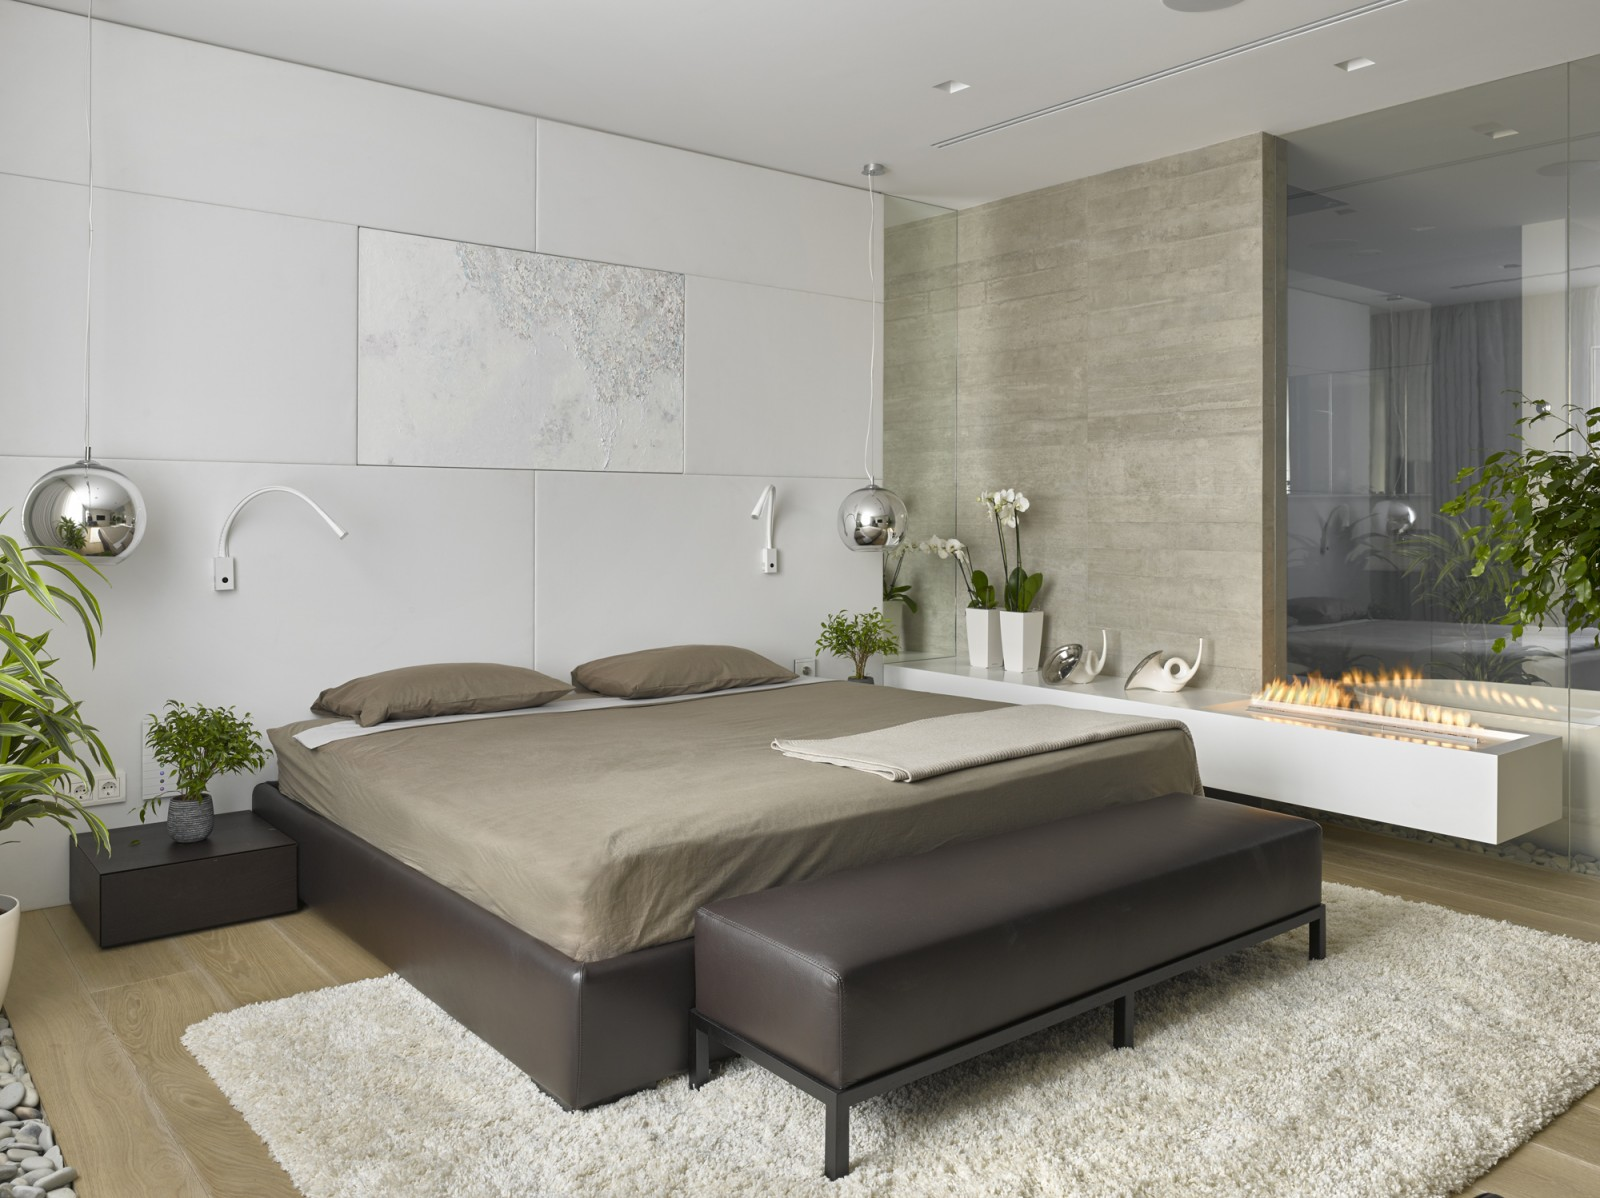 Incroyable Elegant Modern Bedroom Idea From Alexandra Fedorova